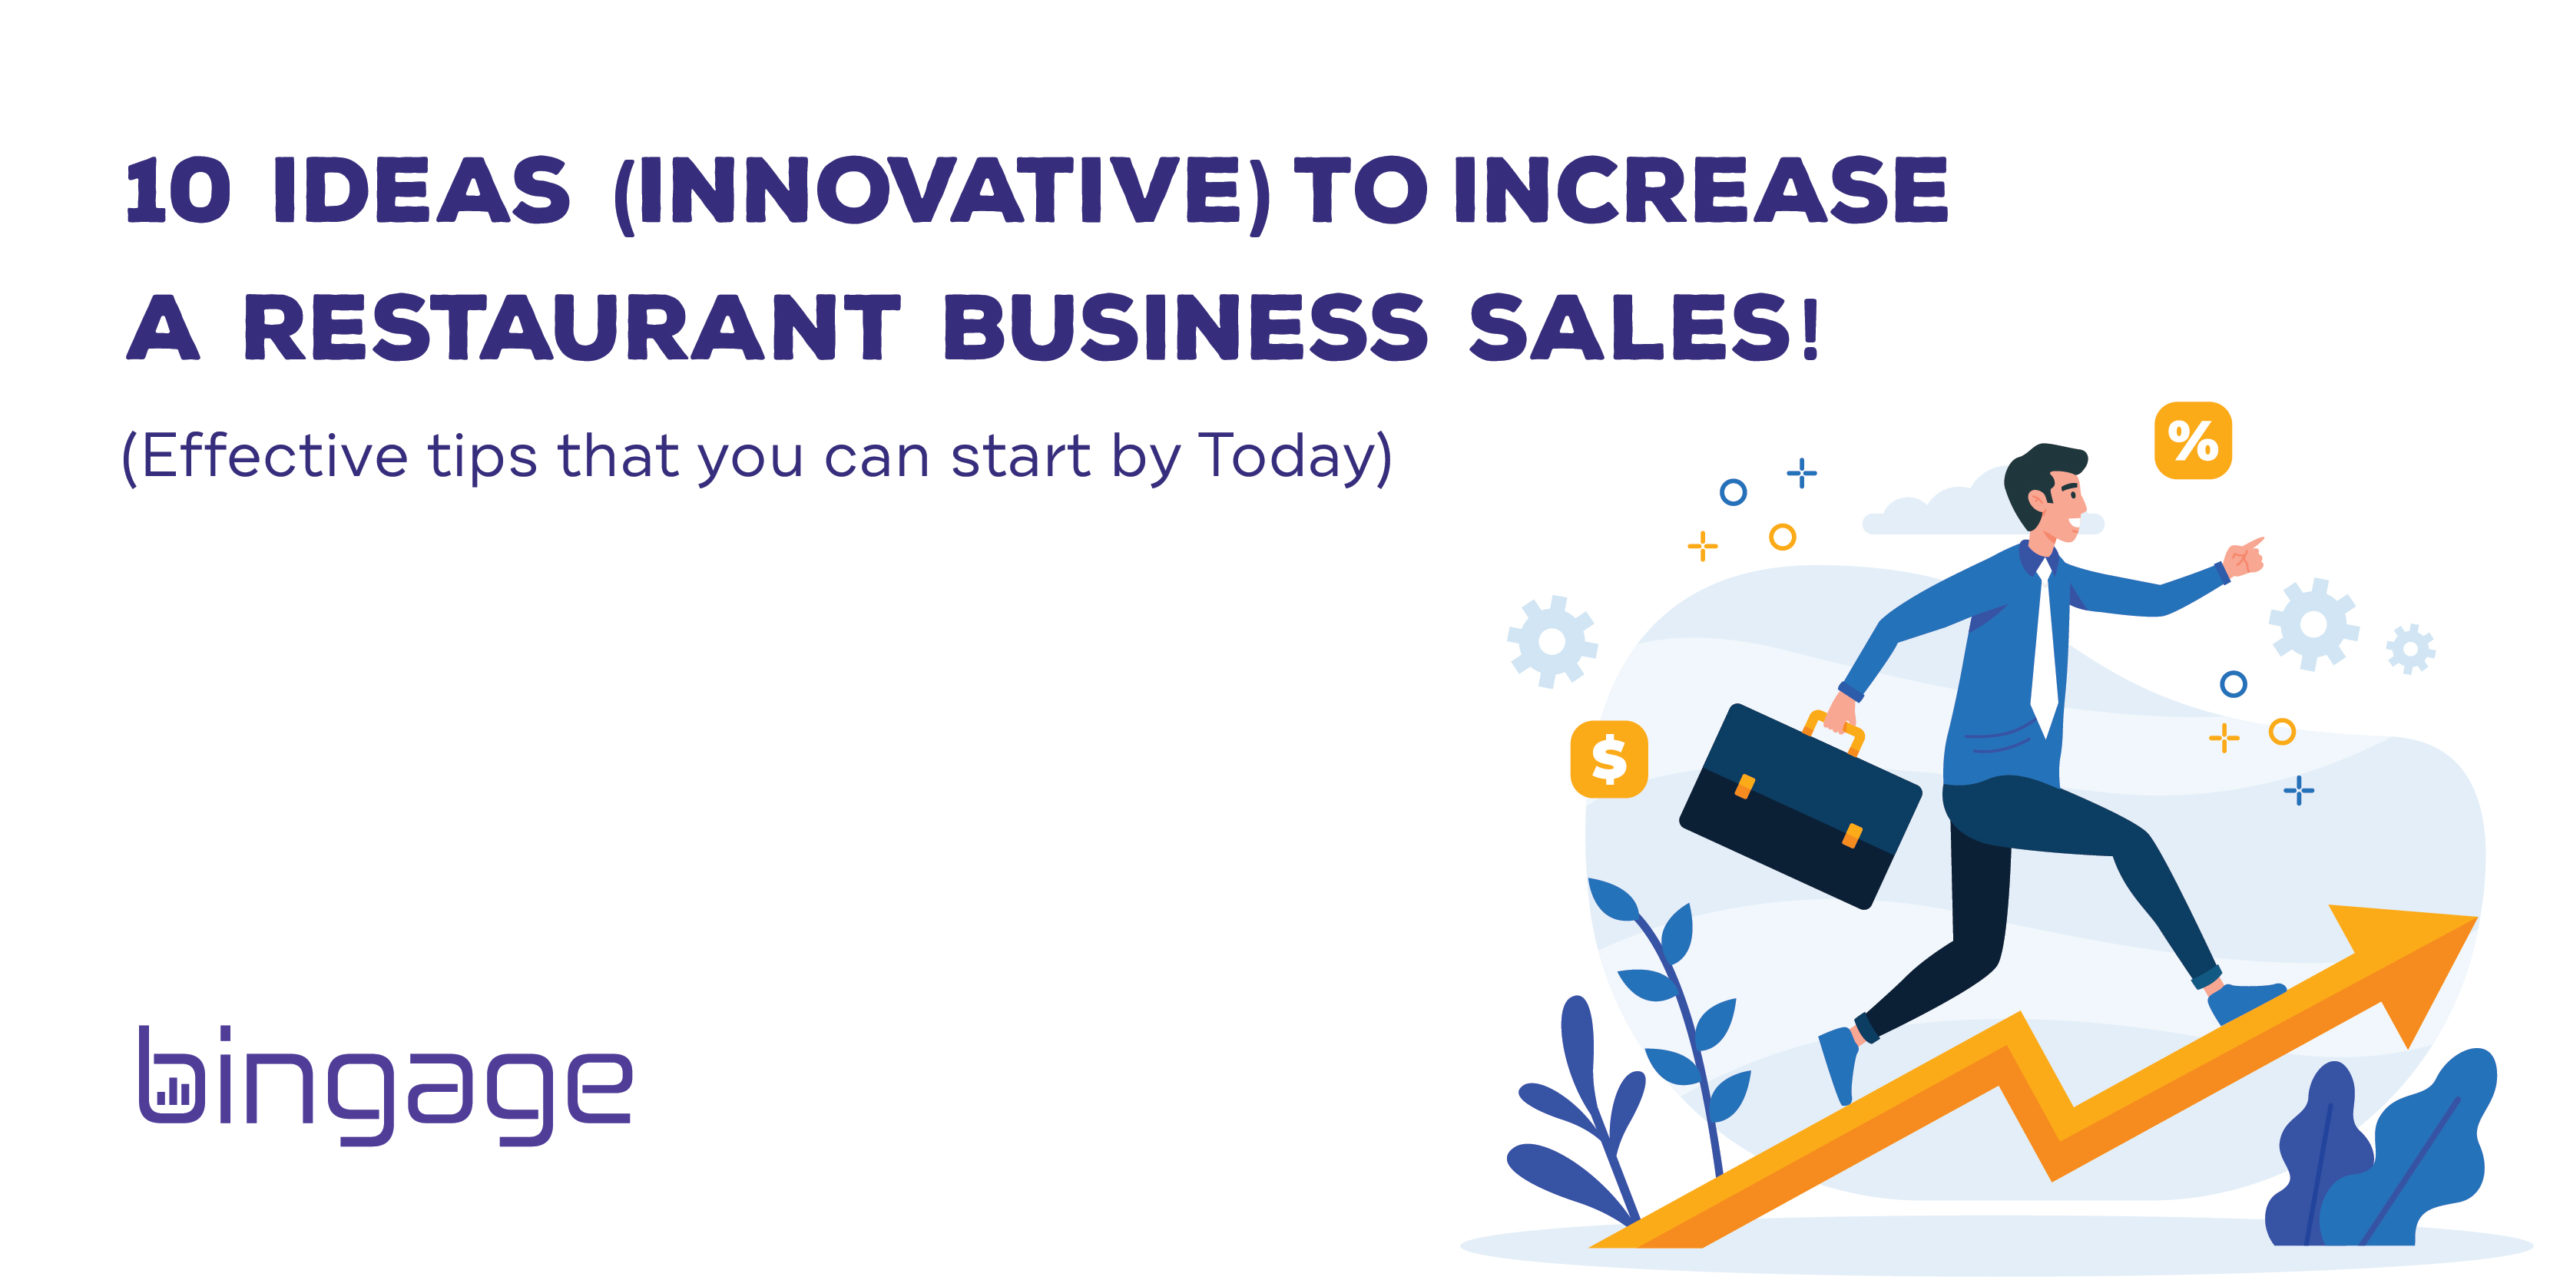 Uncovering 10 Ideas (Innovative) to Increase a Restaurant Sales